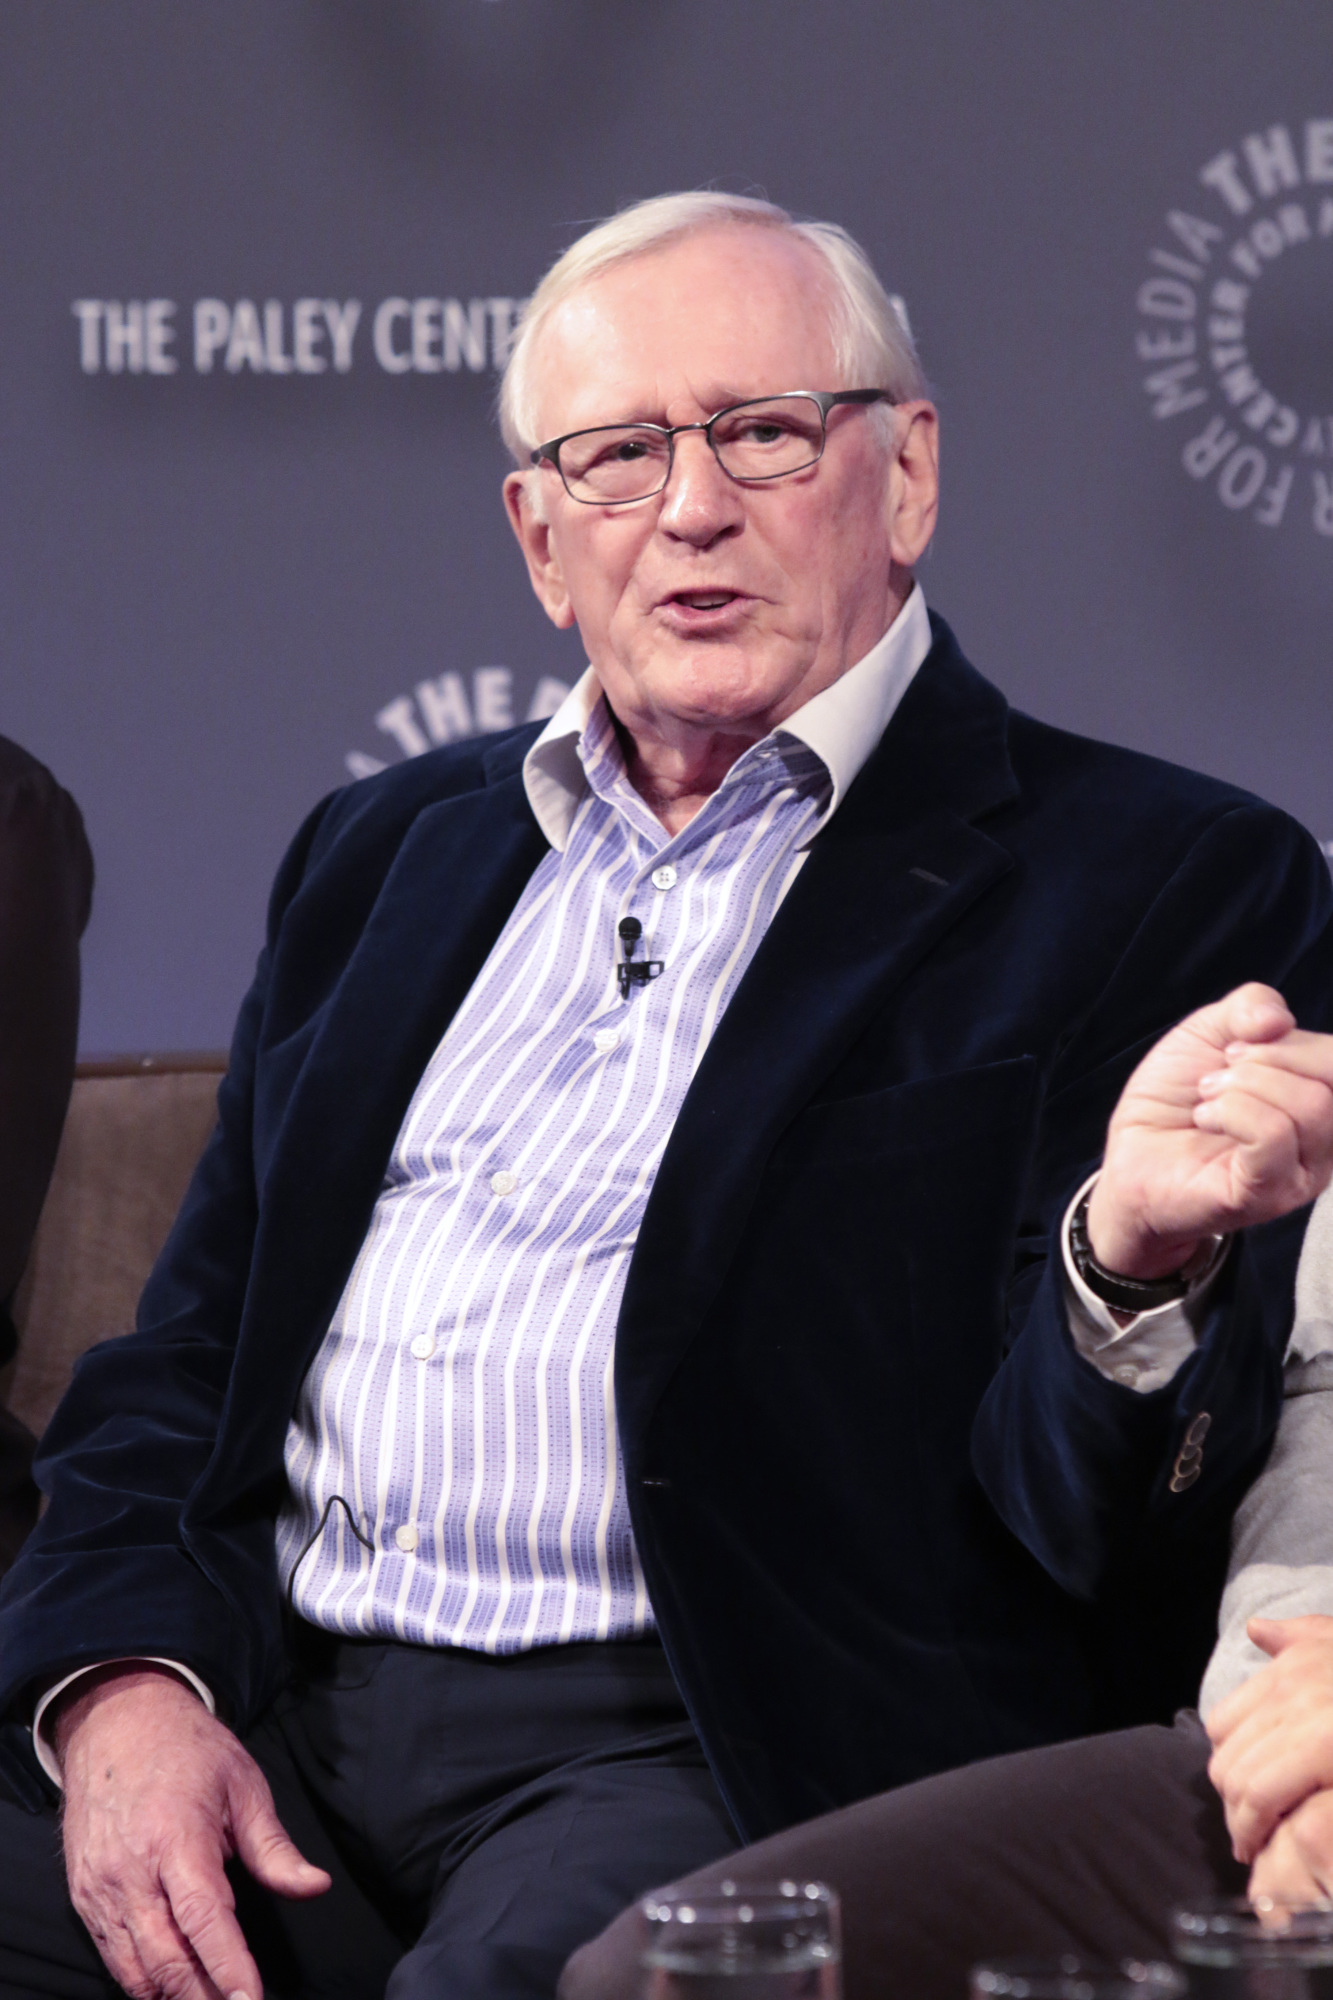 15. Len Cariou expressing his thoughts on the show.